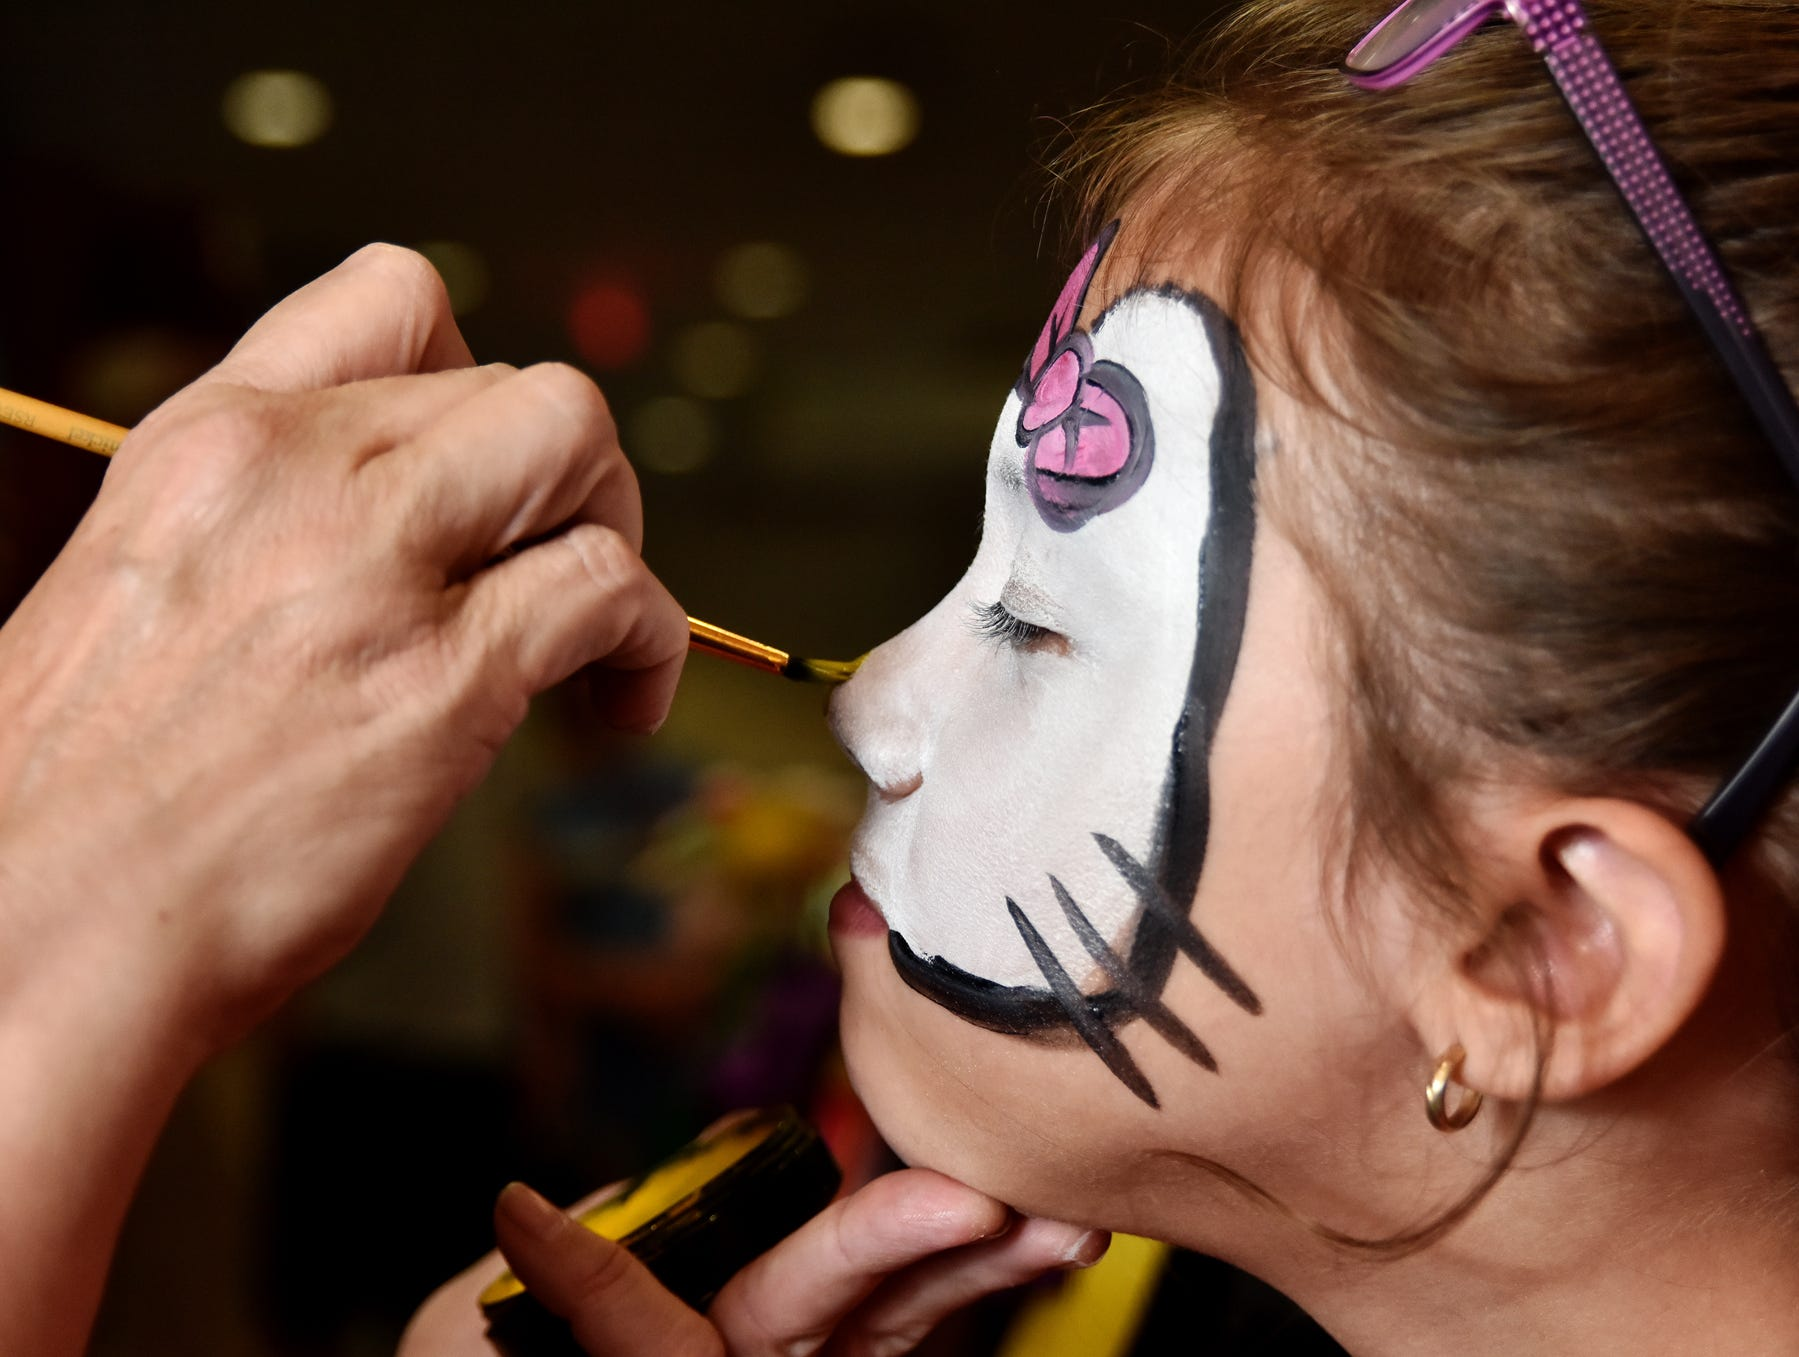 Ellie Barbour, 8, has her face painted at the Shriners Hospital for Children in Greenville on August 15, 2018.